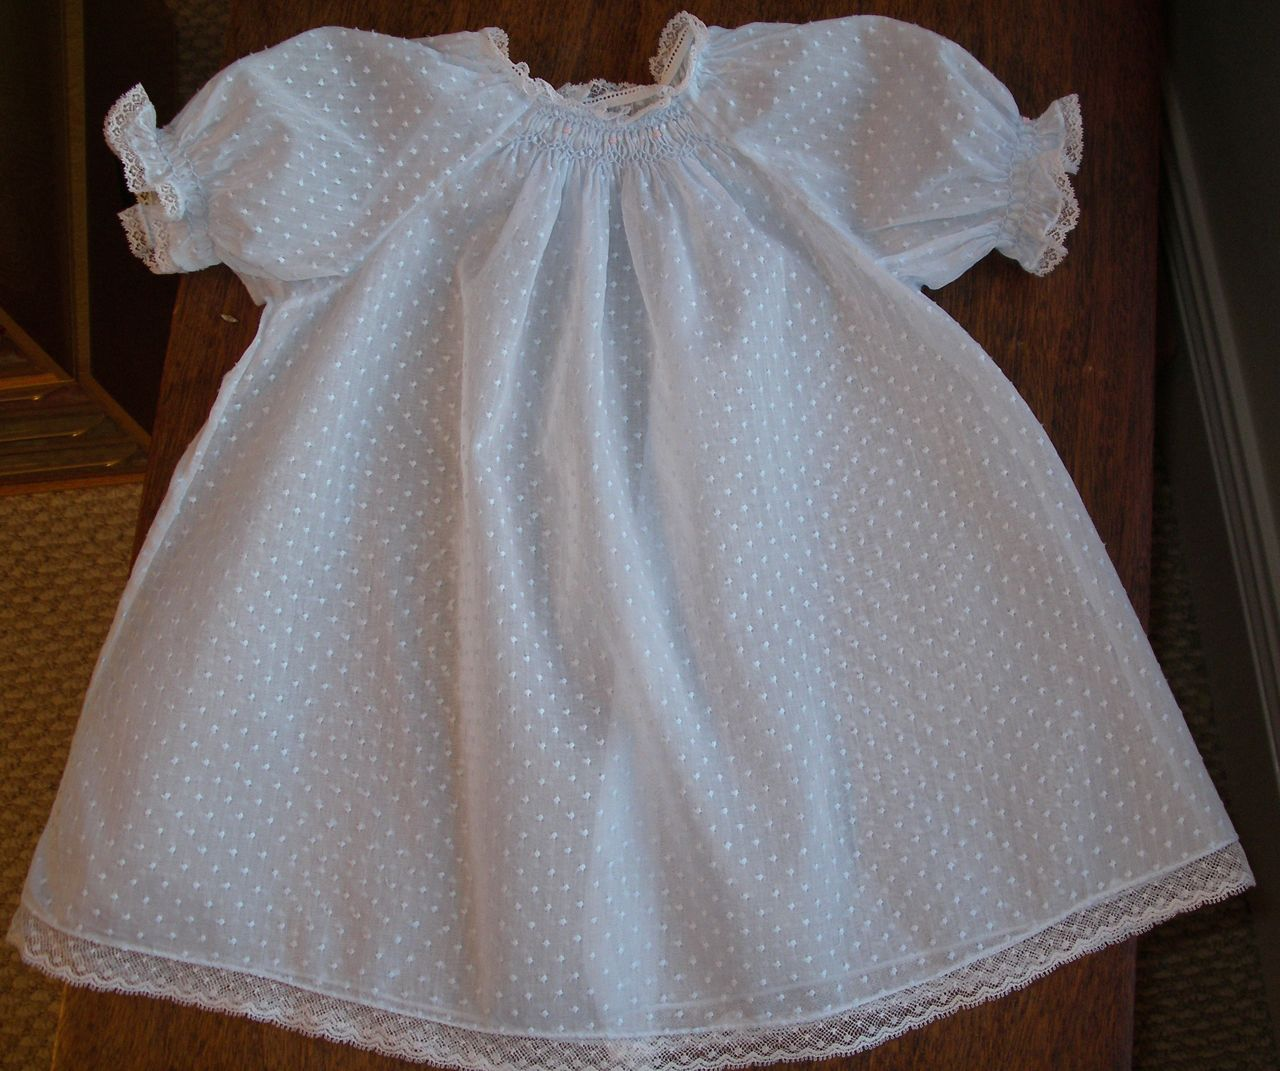 9a92bf2b7d86c The Old Fashioned Baby Sewing Room: Blue Dotted Swiss Smocked Baby Dress